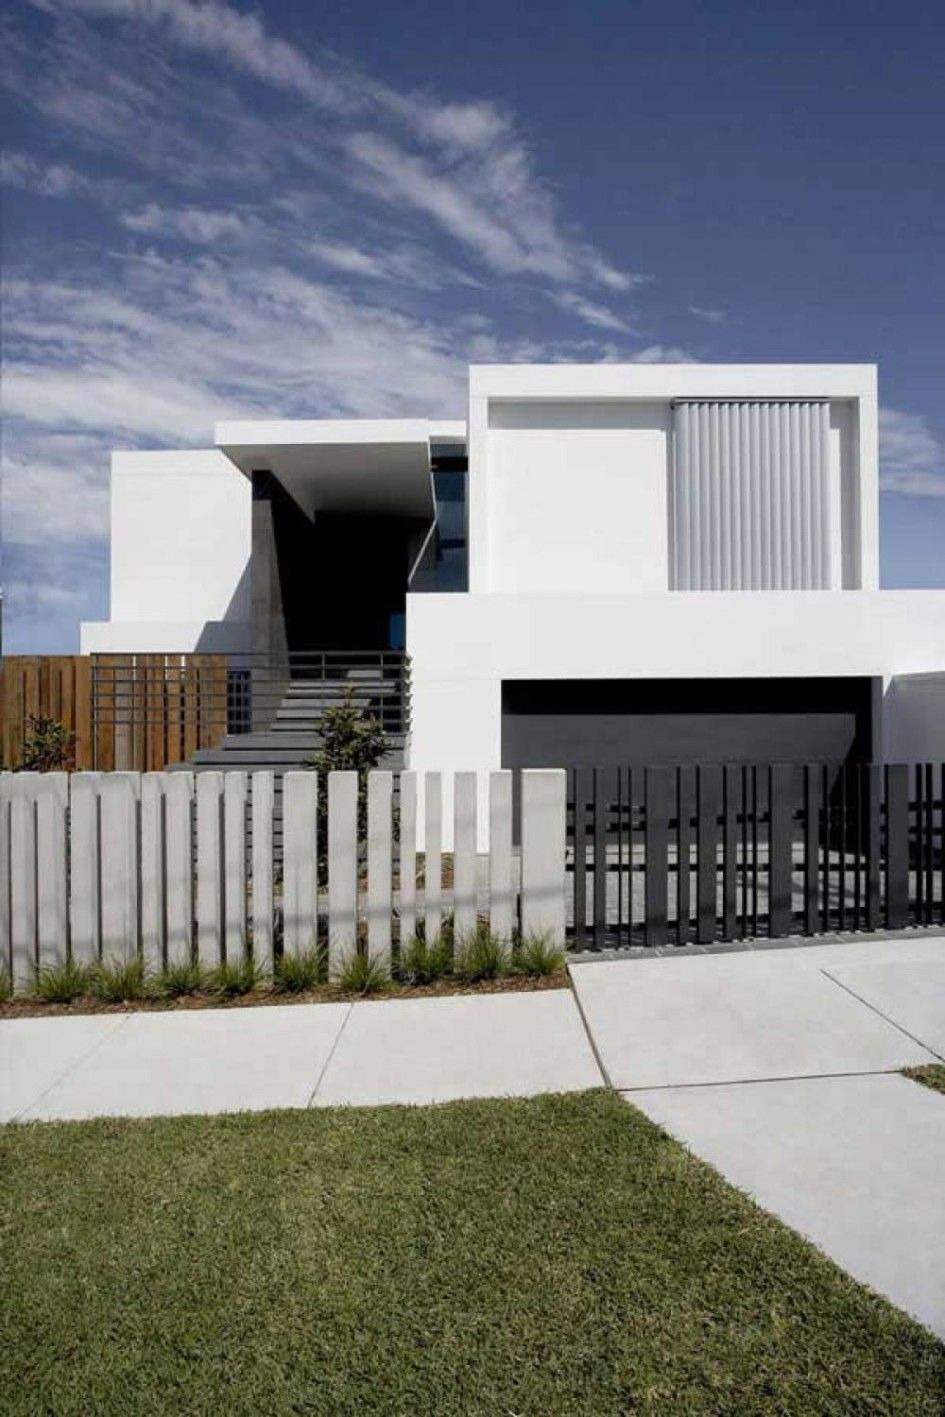 Contemporary Gate Designs for Homes New Fence Gate Design Images for Minimalist House Modern House